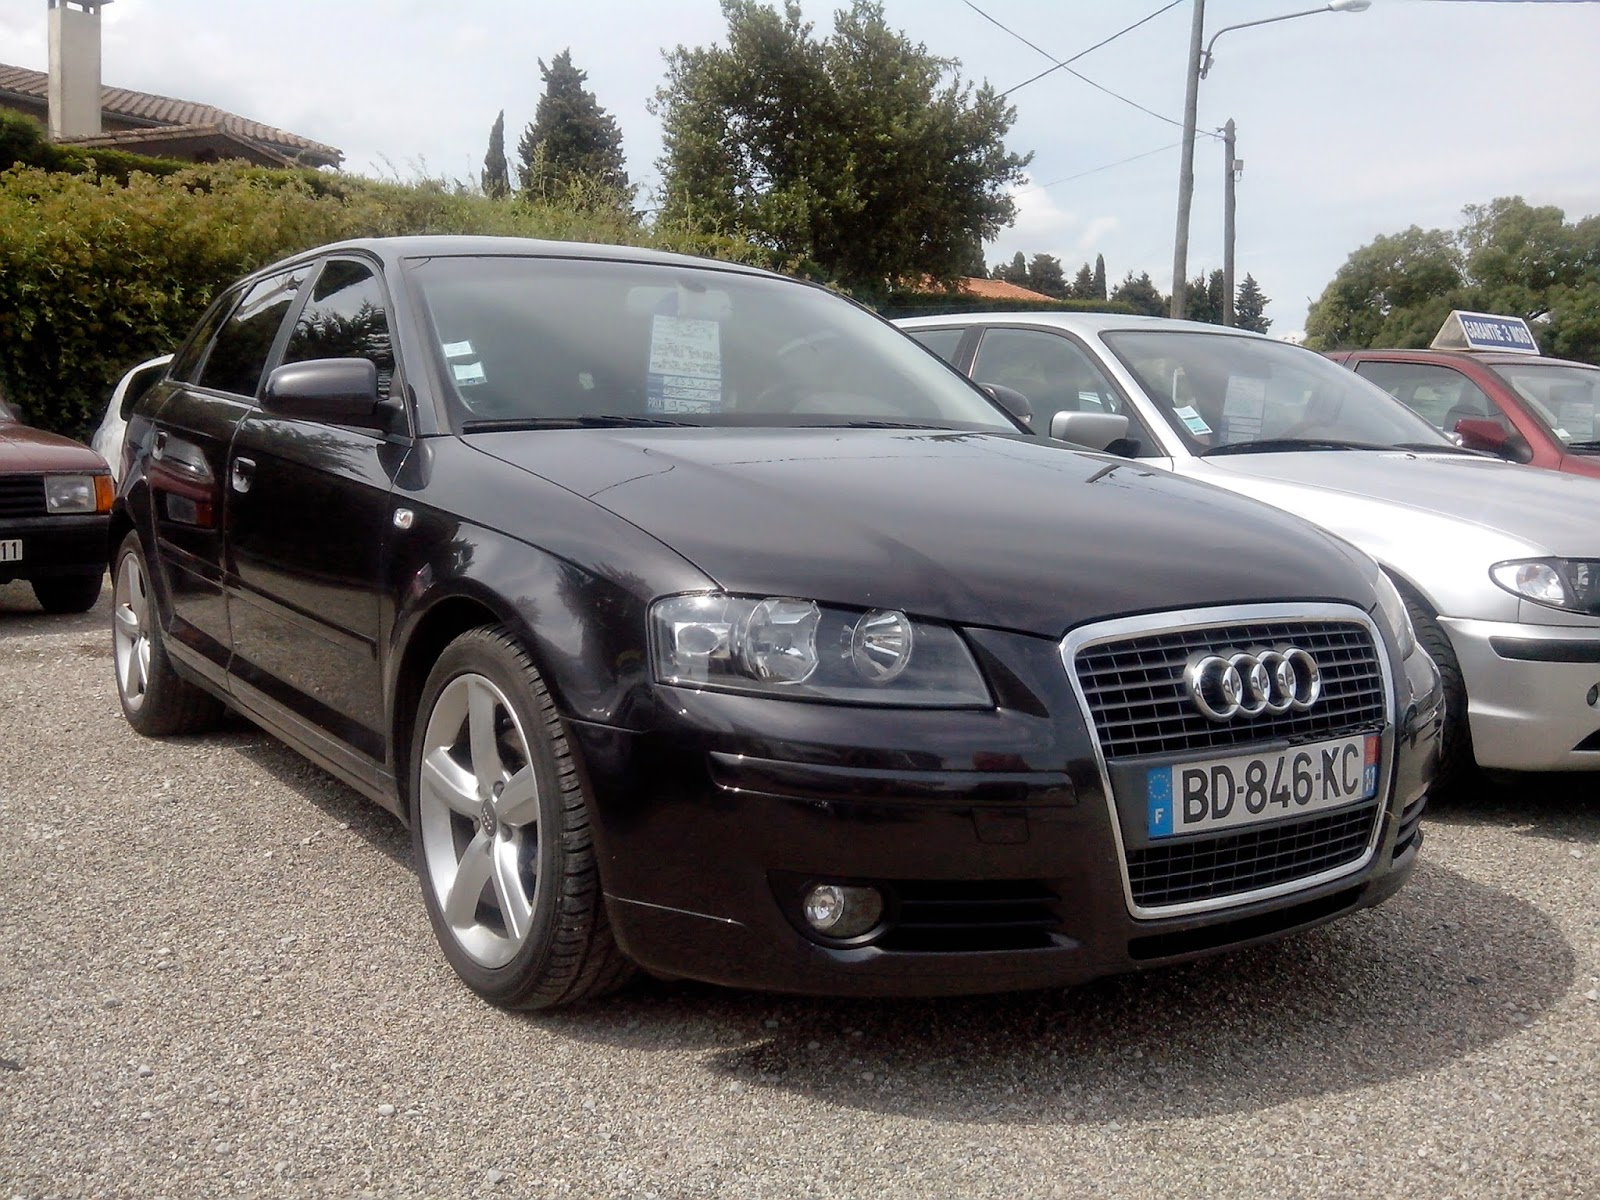 audi a3 sportback 2 0tdi 140 ambition luxe bv6 s tronic marcel depannage. Black Bedroom Furniture Sets. Home Design Ideas